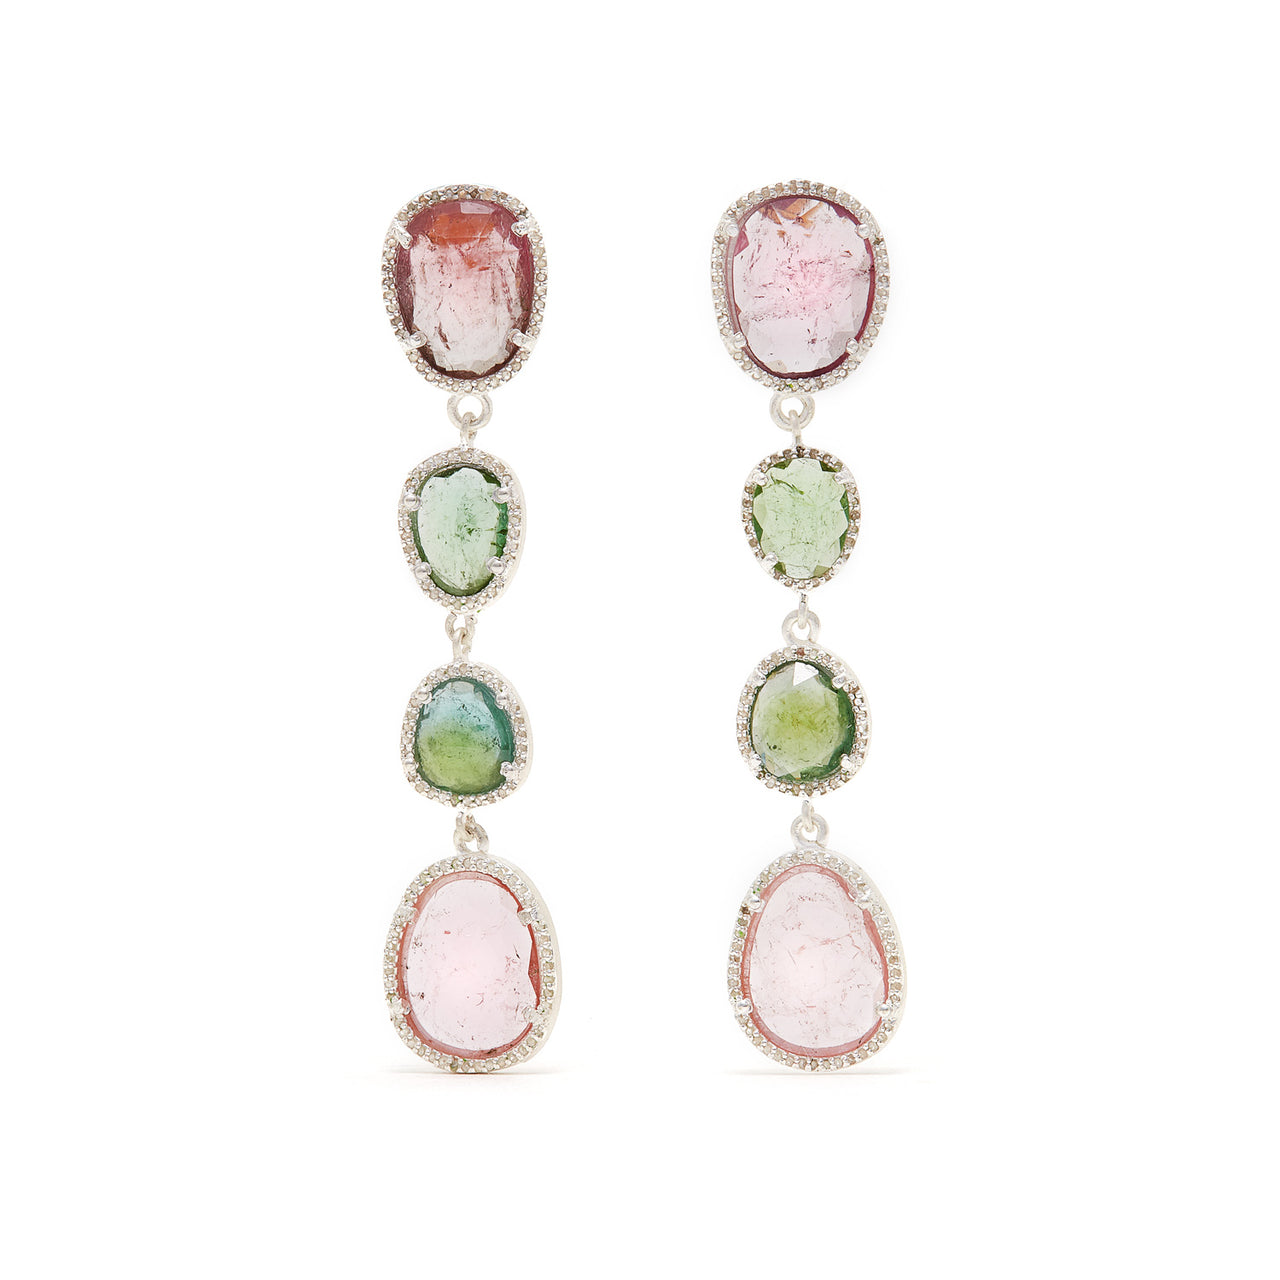 Jaipur Atelier Rose Mint Tourmaline Diamond Drop Earrings